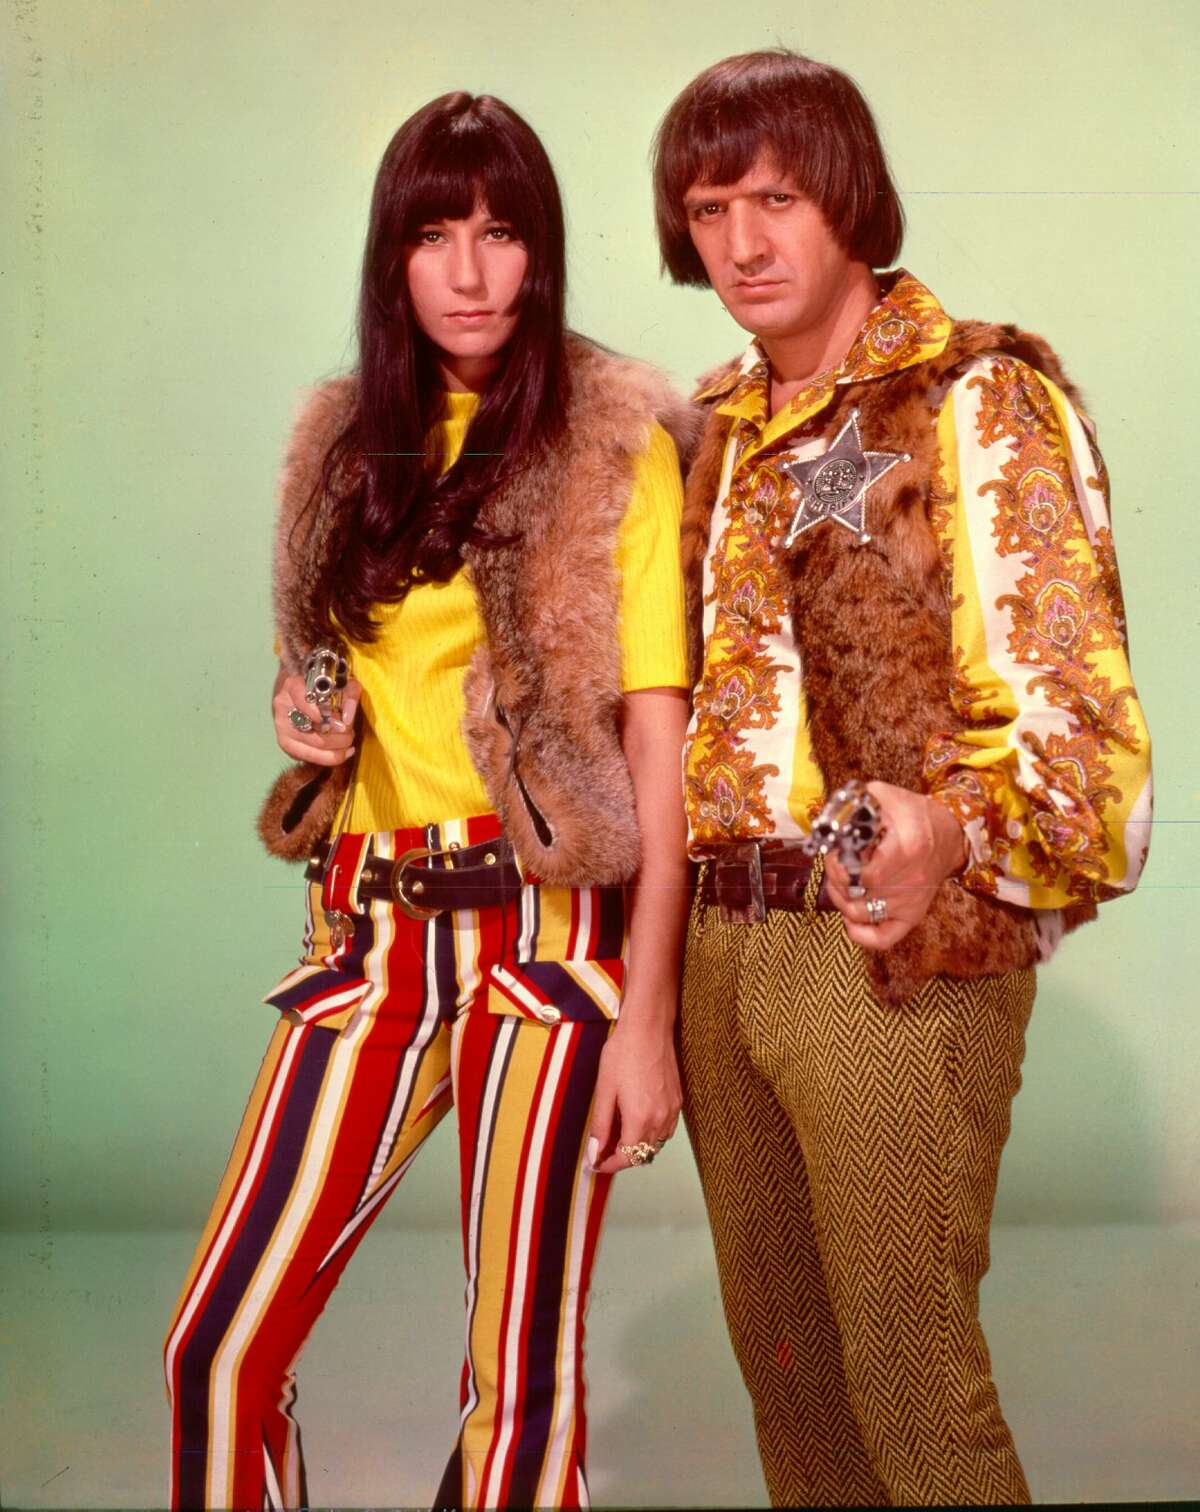 Entertainers Sonny Bono & Cher point guns toward the camera as they pose for a portrait, circa 1968.